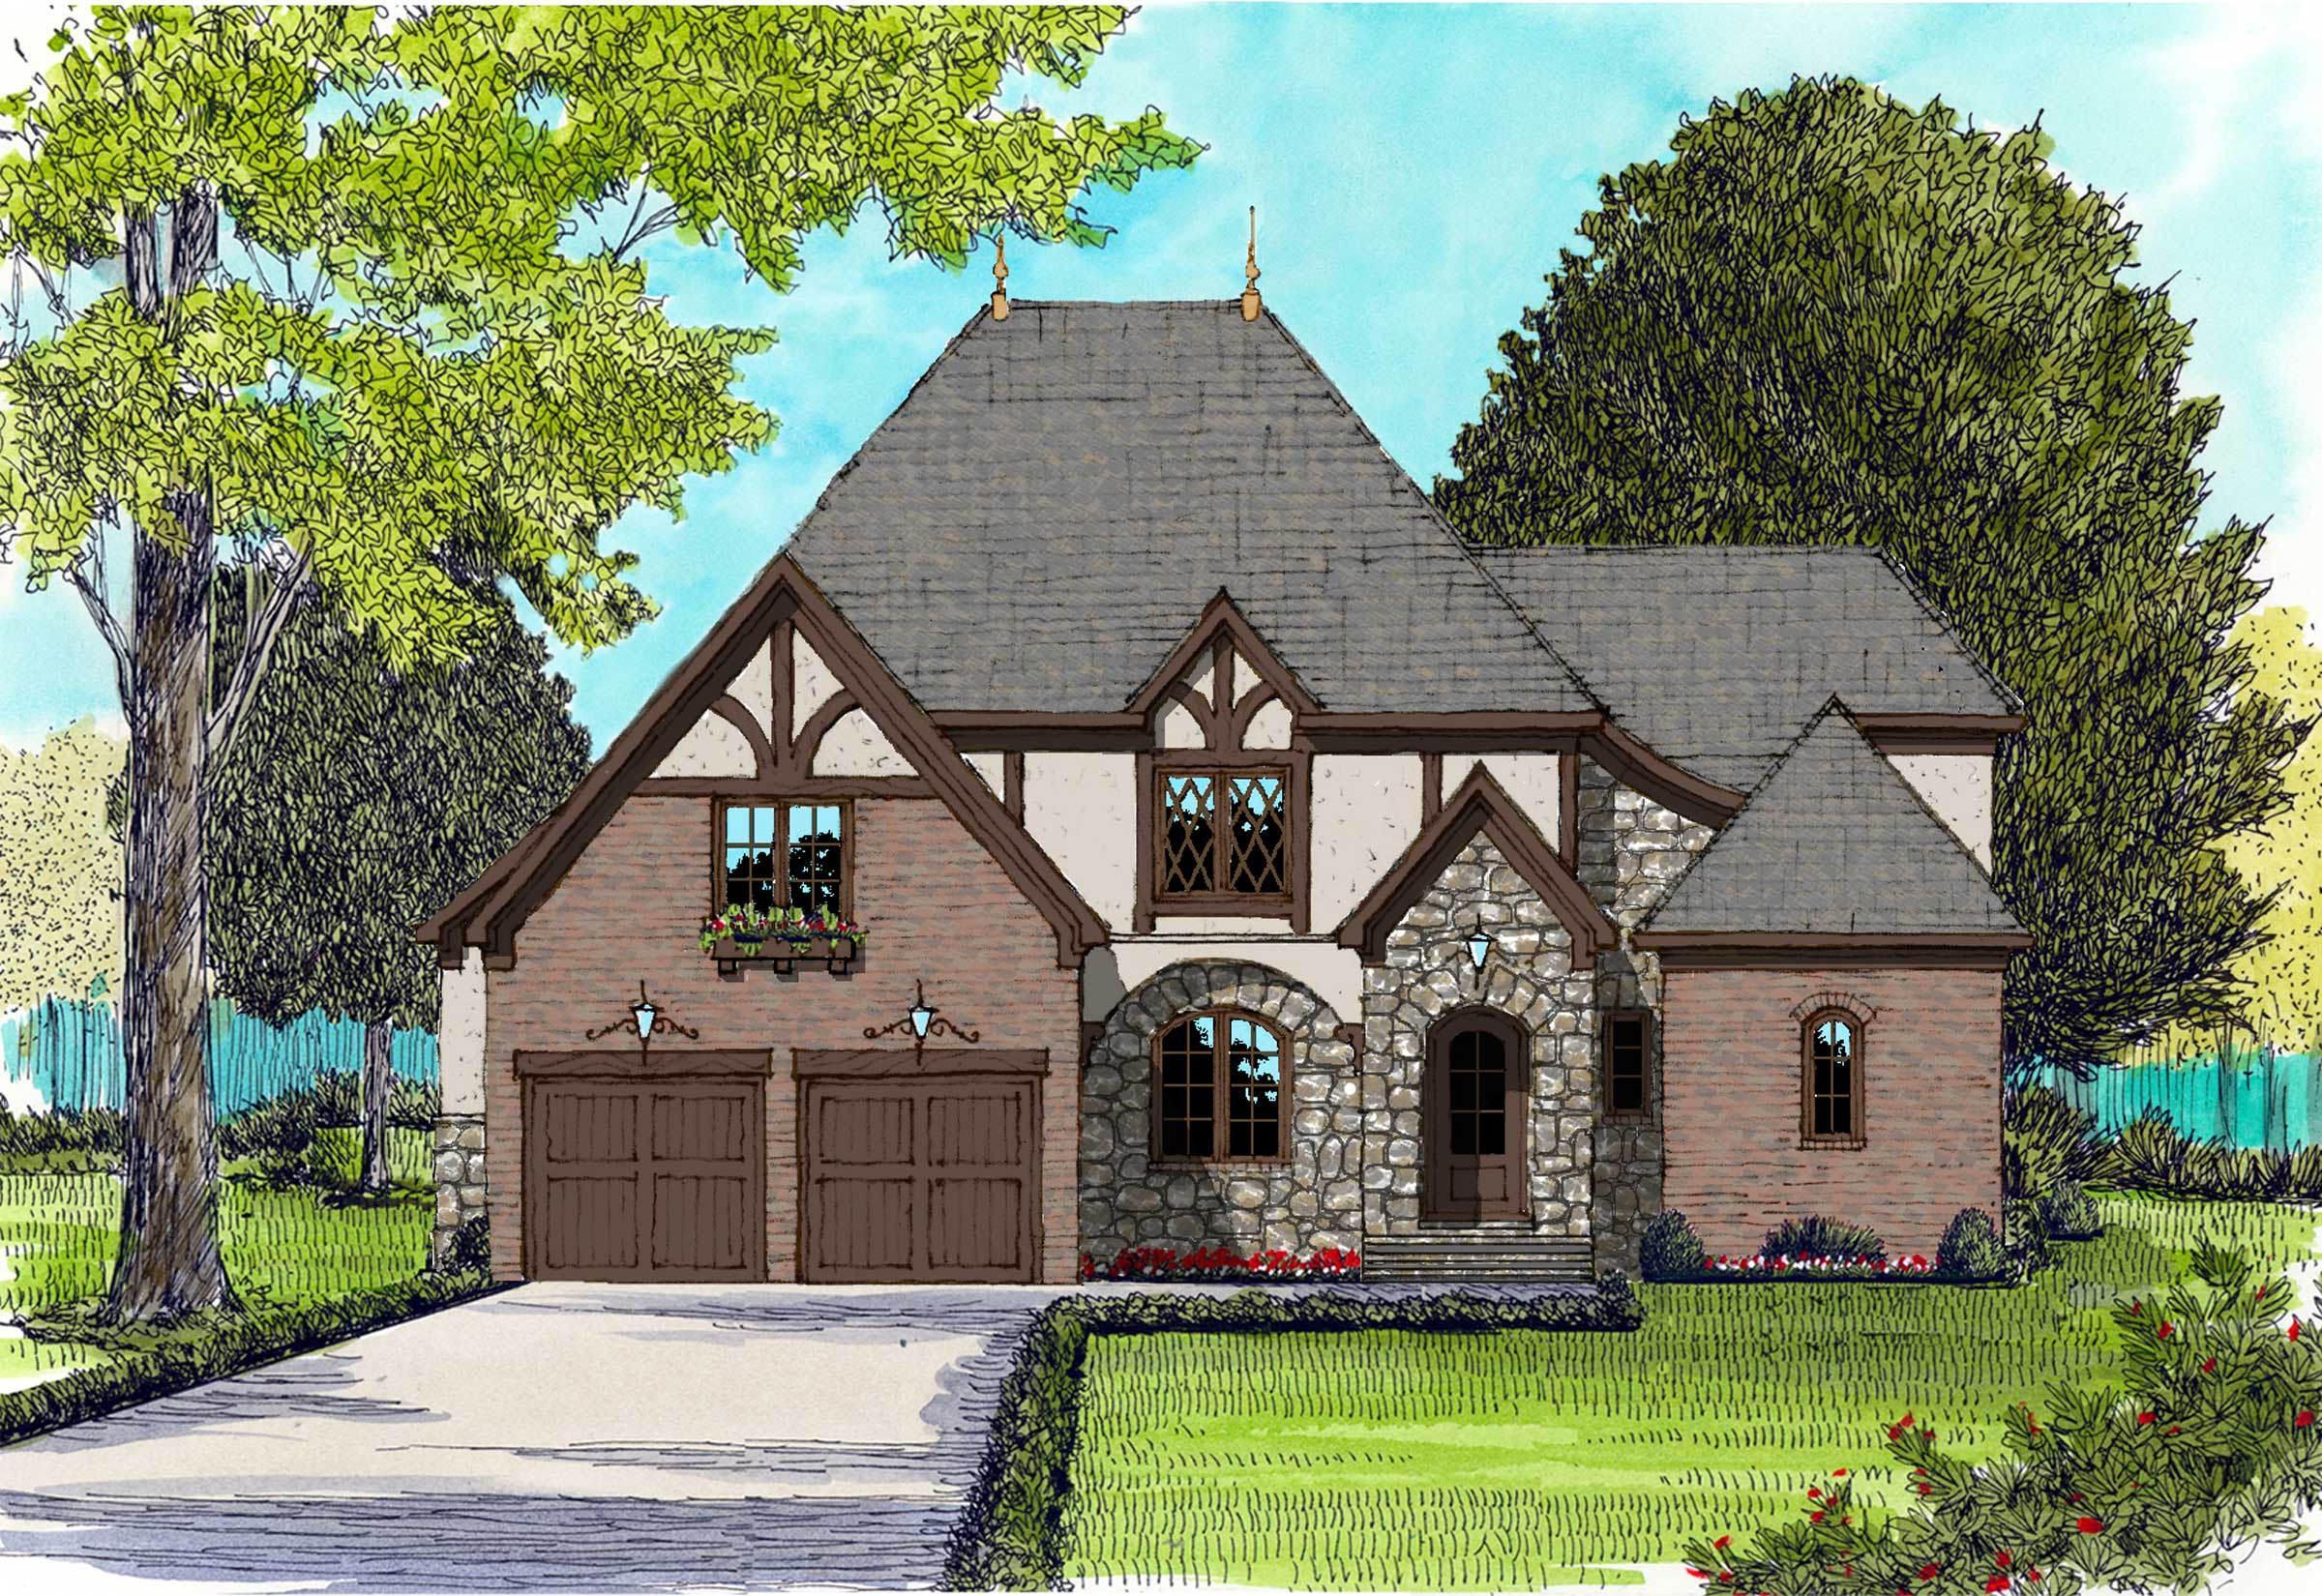 French plans edg 3910 for French tudor house plans